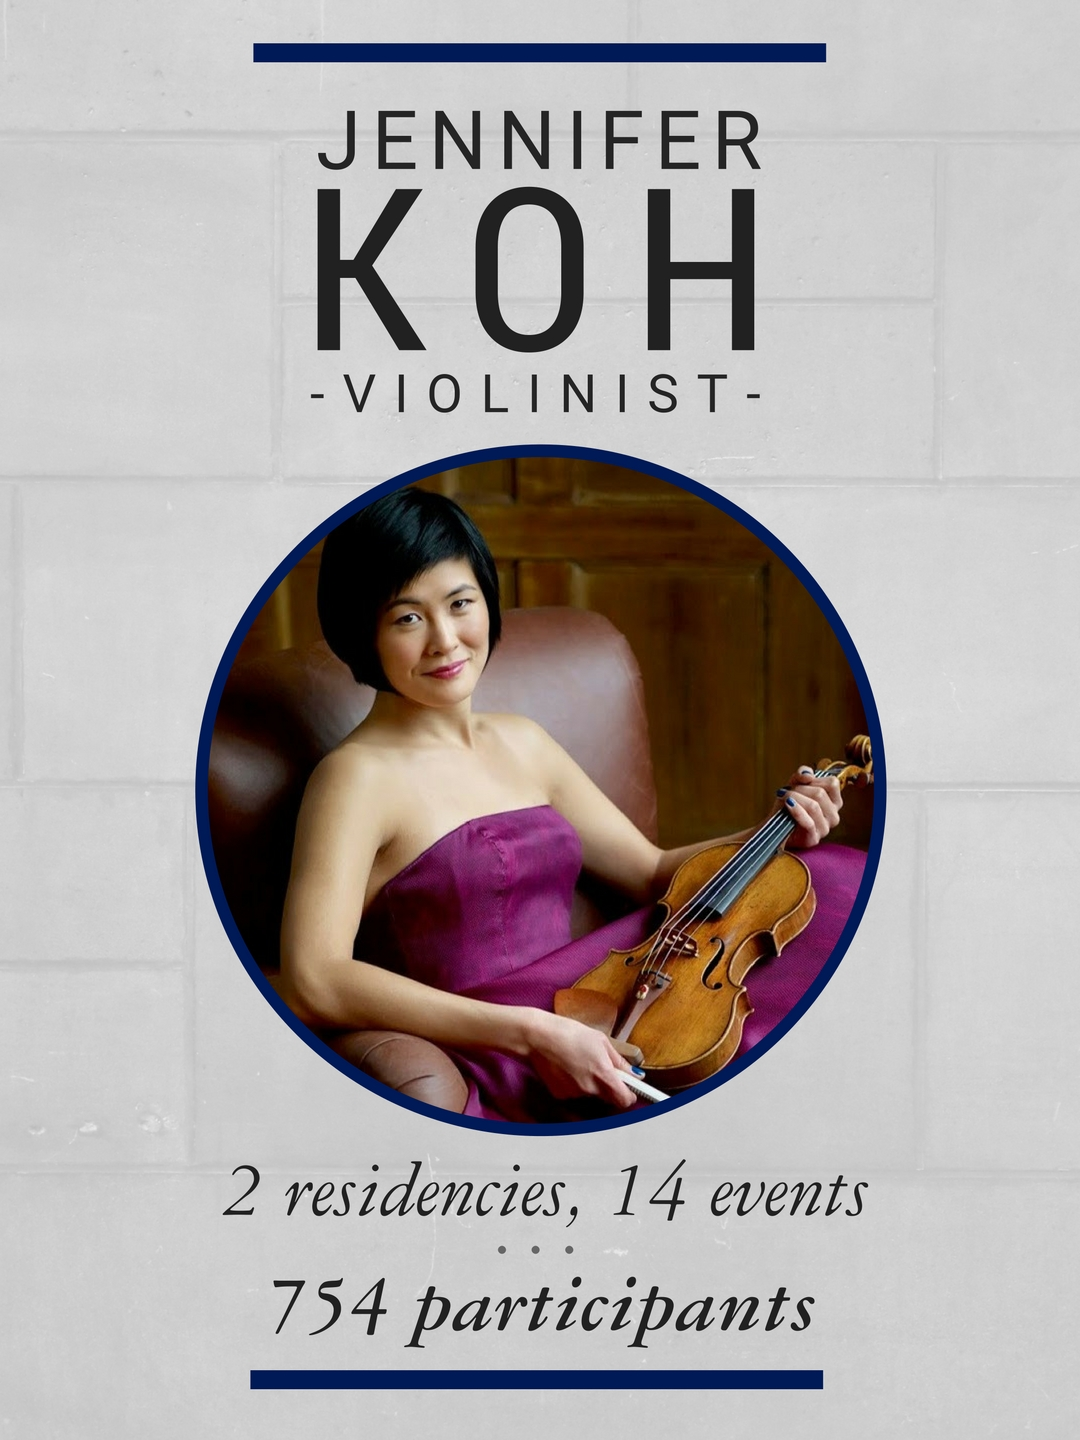 During her 2 residencies on campus, violinist Jennifer Koh hosted 14 events that reached 752 participants